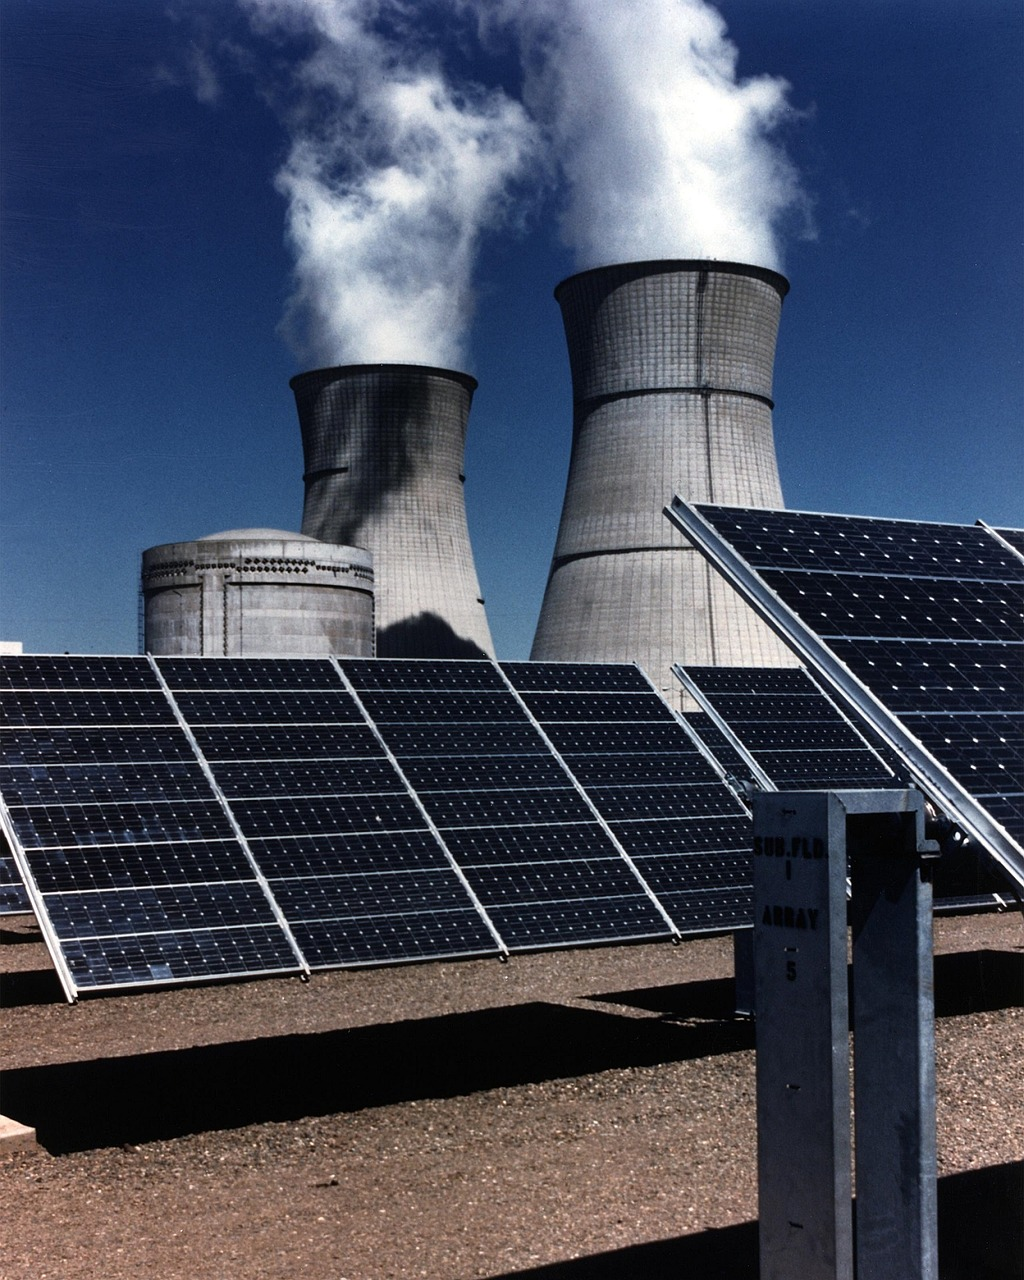 How can renewable energy technologies support the nuclear power industry?